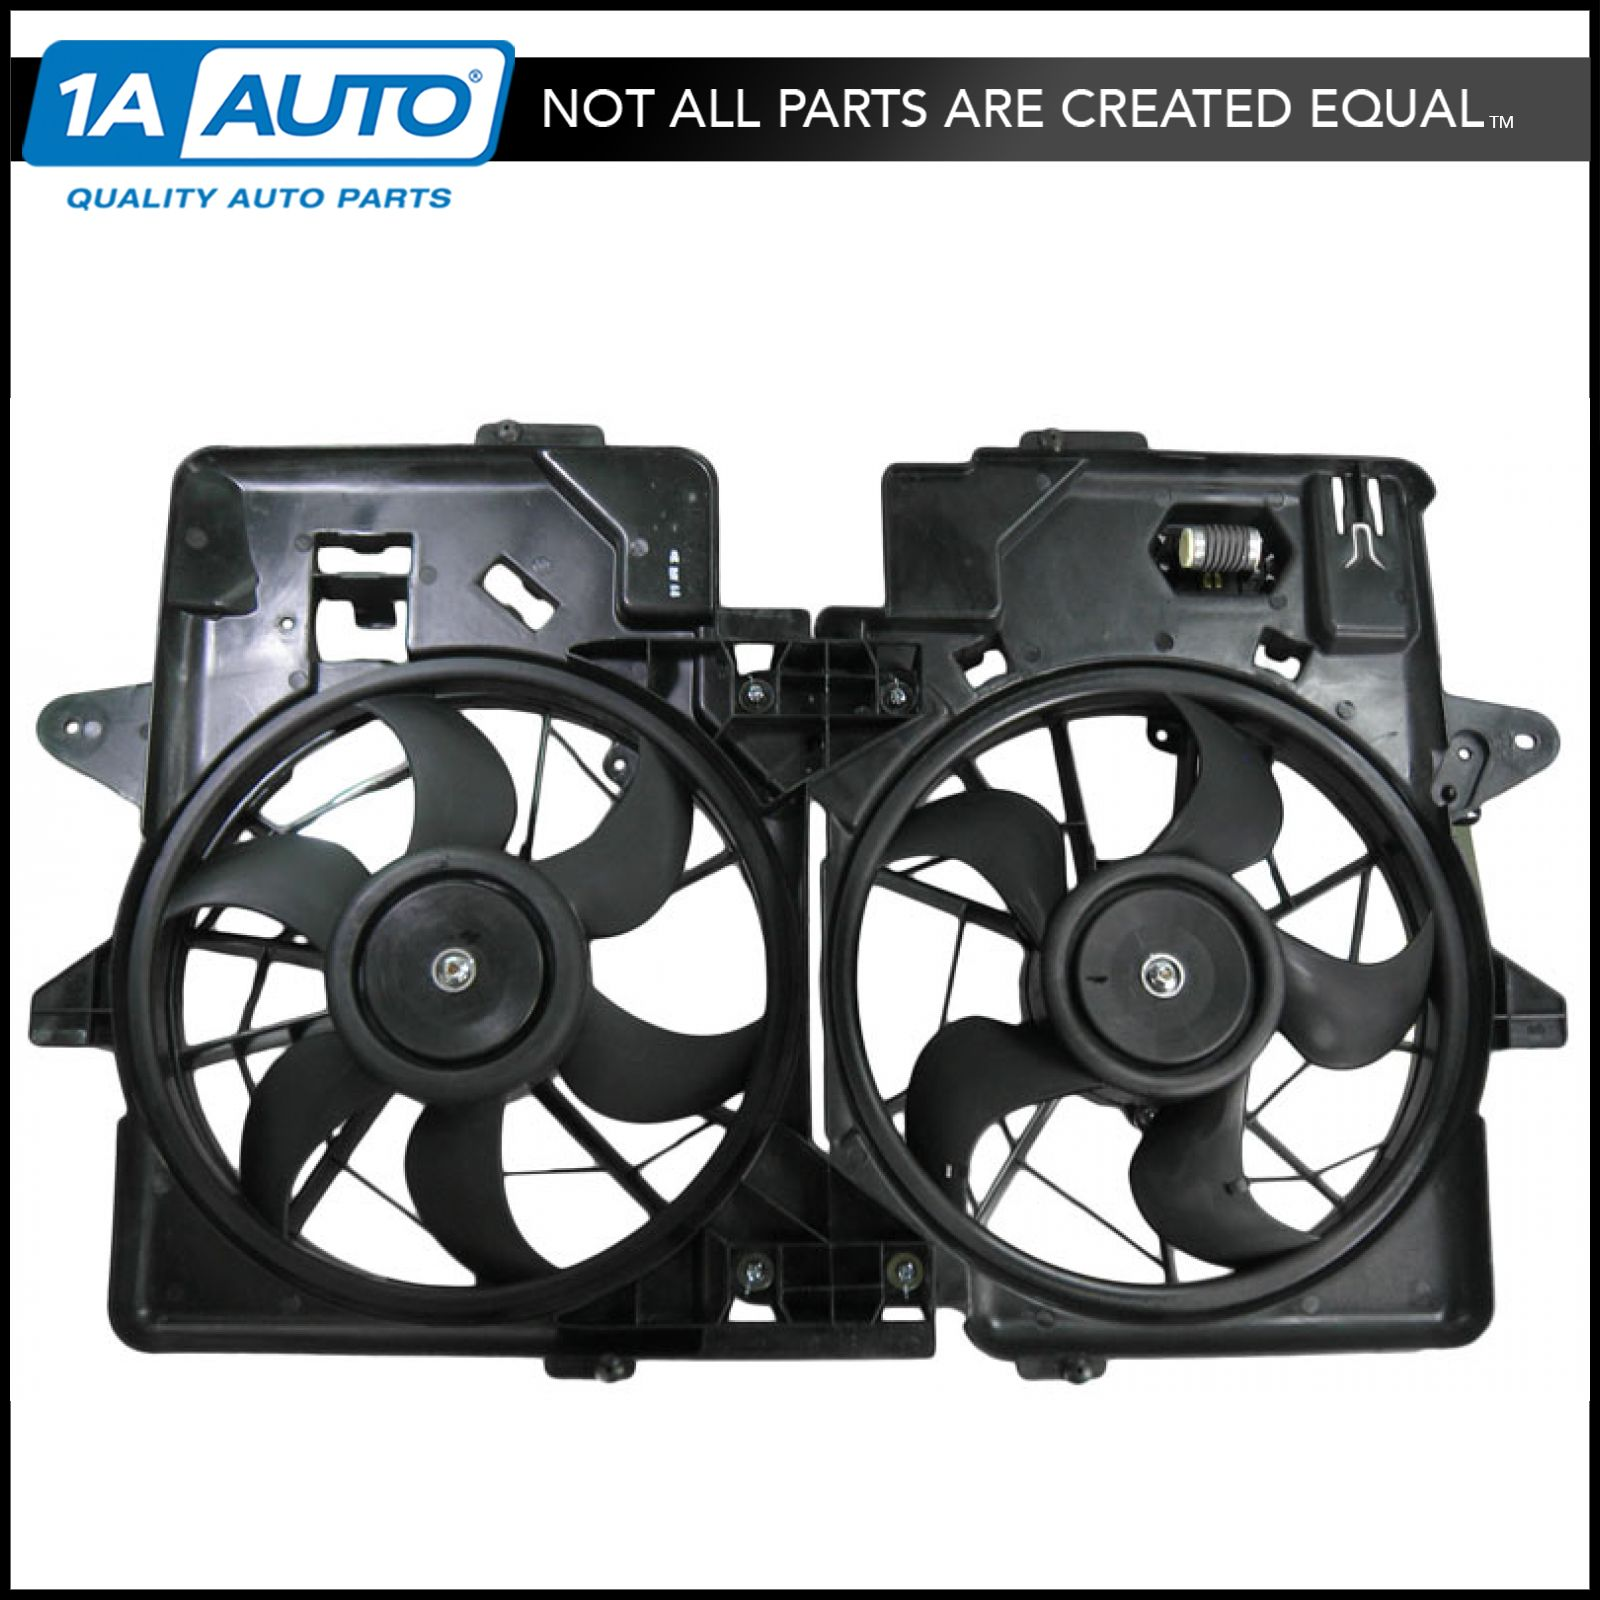 Radiator Dual Cooling Fan Assembly for 01-04 Ford Escape Mazda Tribute 3.0L